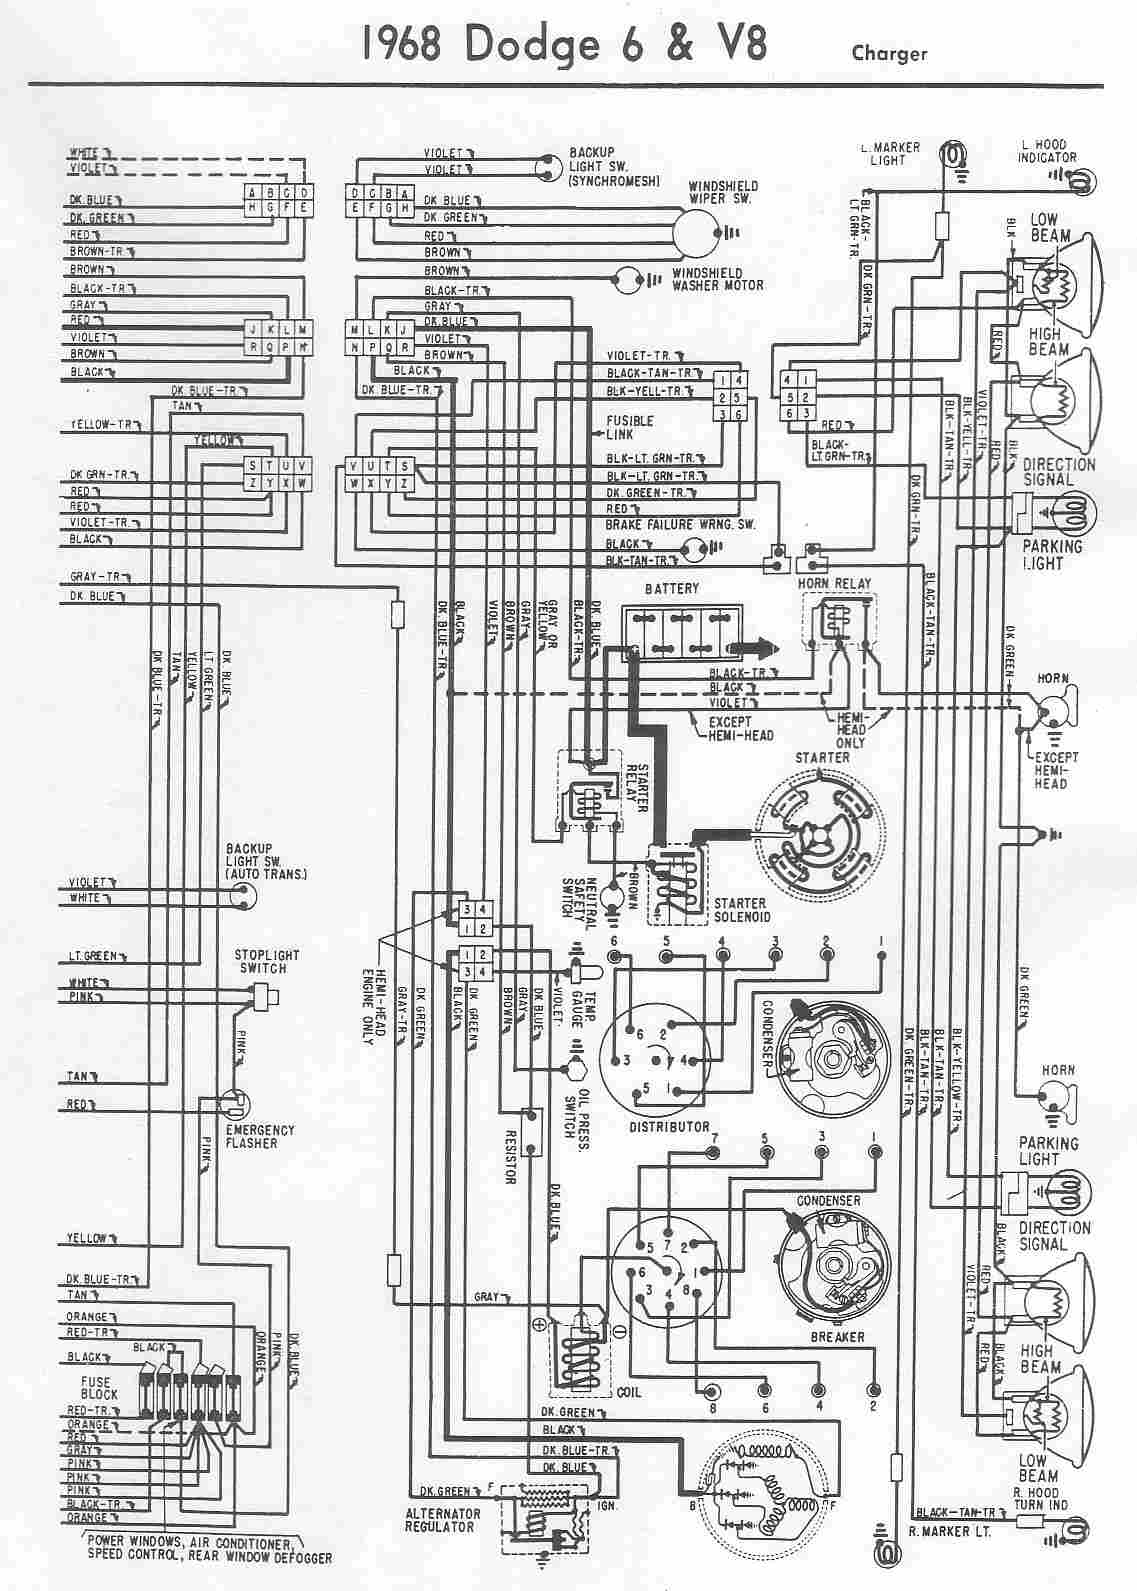 1968 gtx wiring diagram simple wiring post 1968 thunderbird wiring diagram 1968 gtx wiring diagram [ 1137 x 1591 Pixel ]